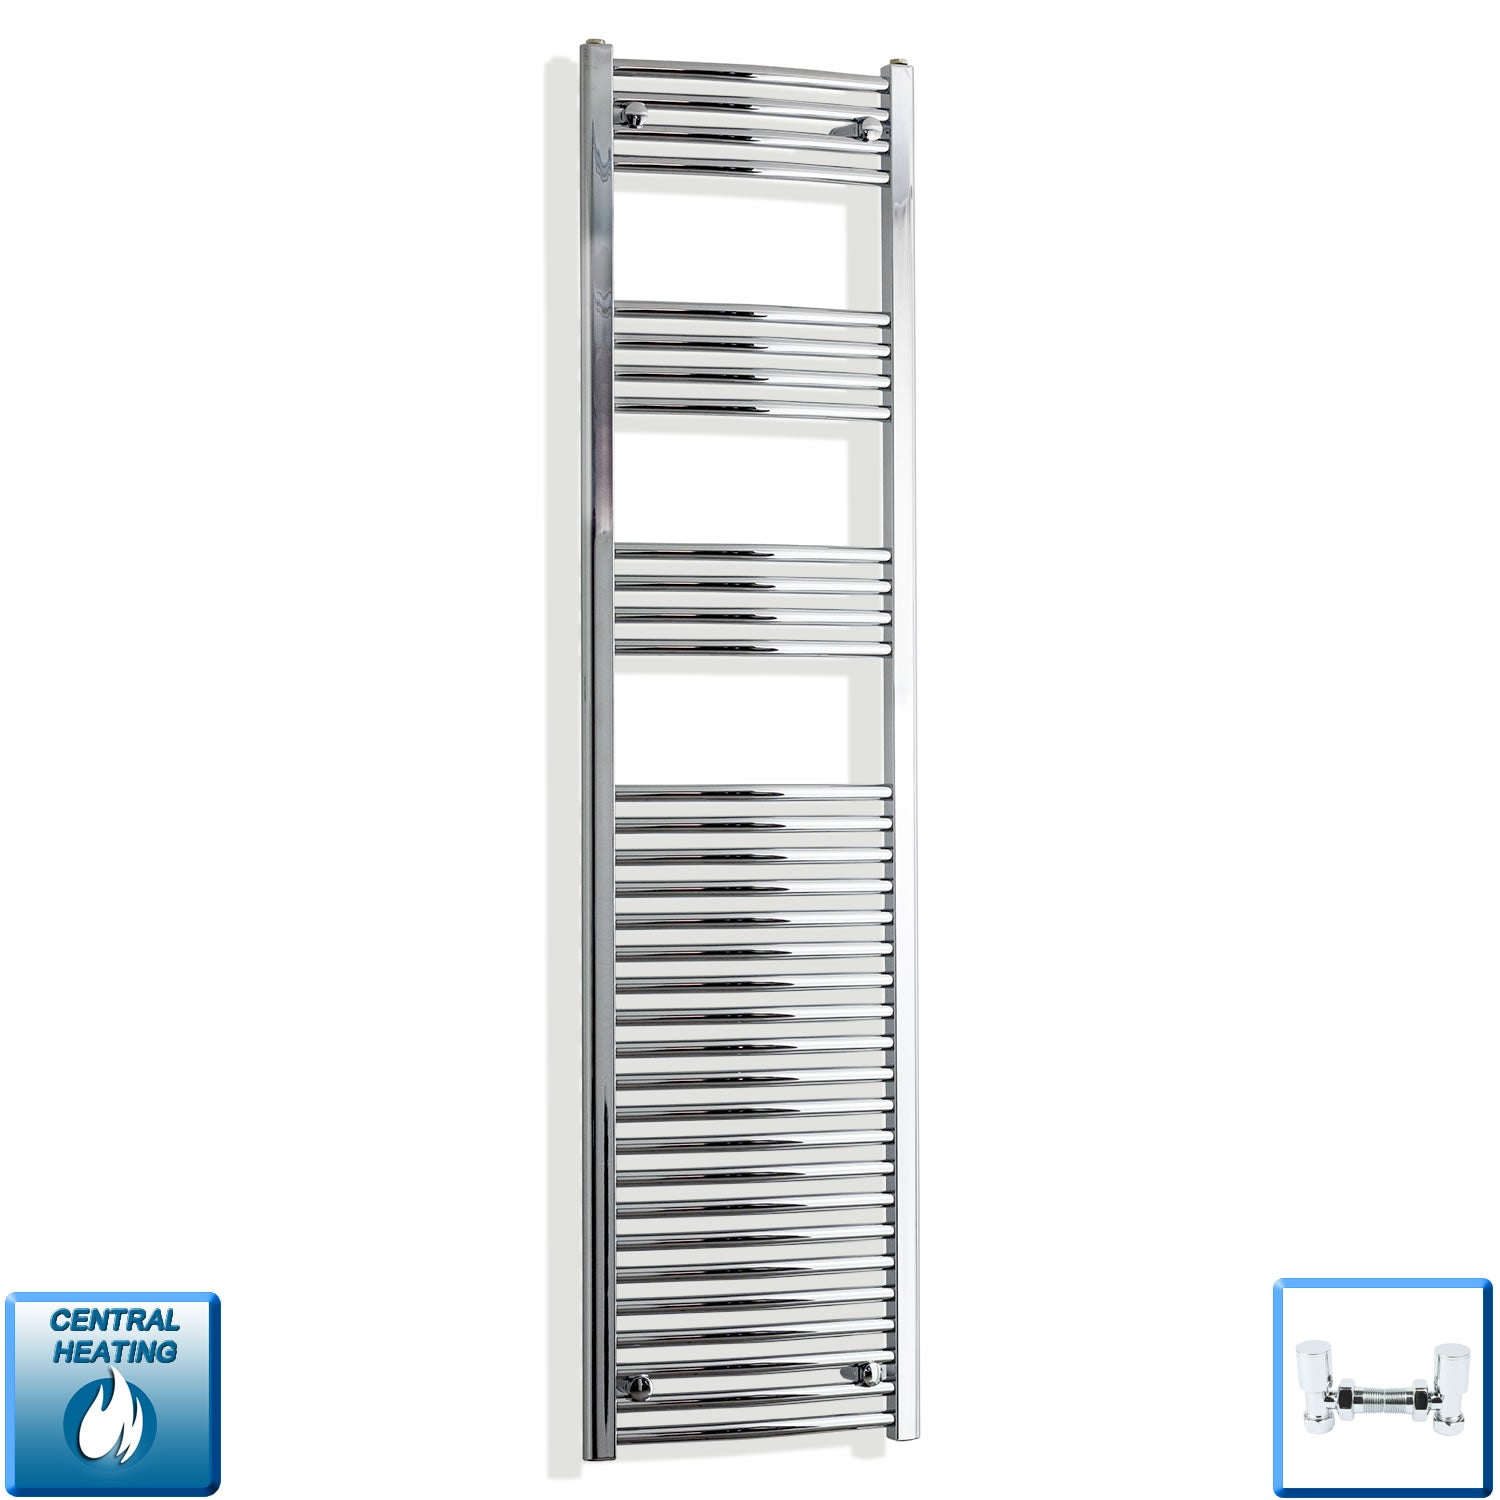 450mm Wide 1800mm High Chrome Towel Rail Radiator With Angled Valve